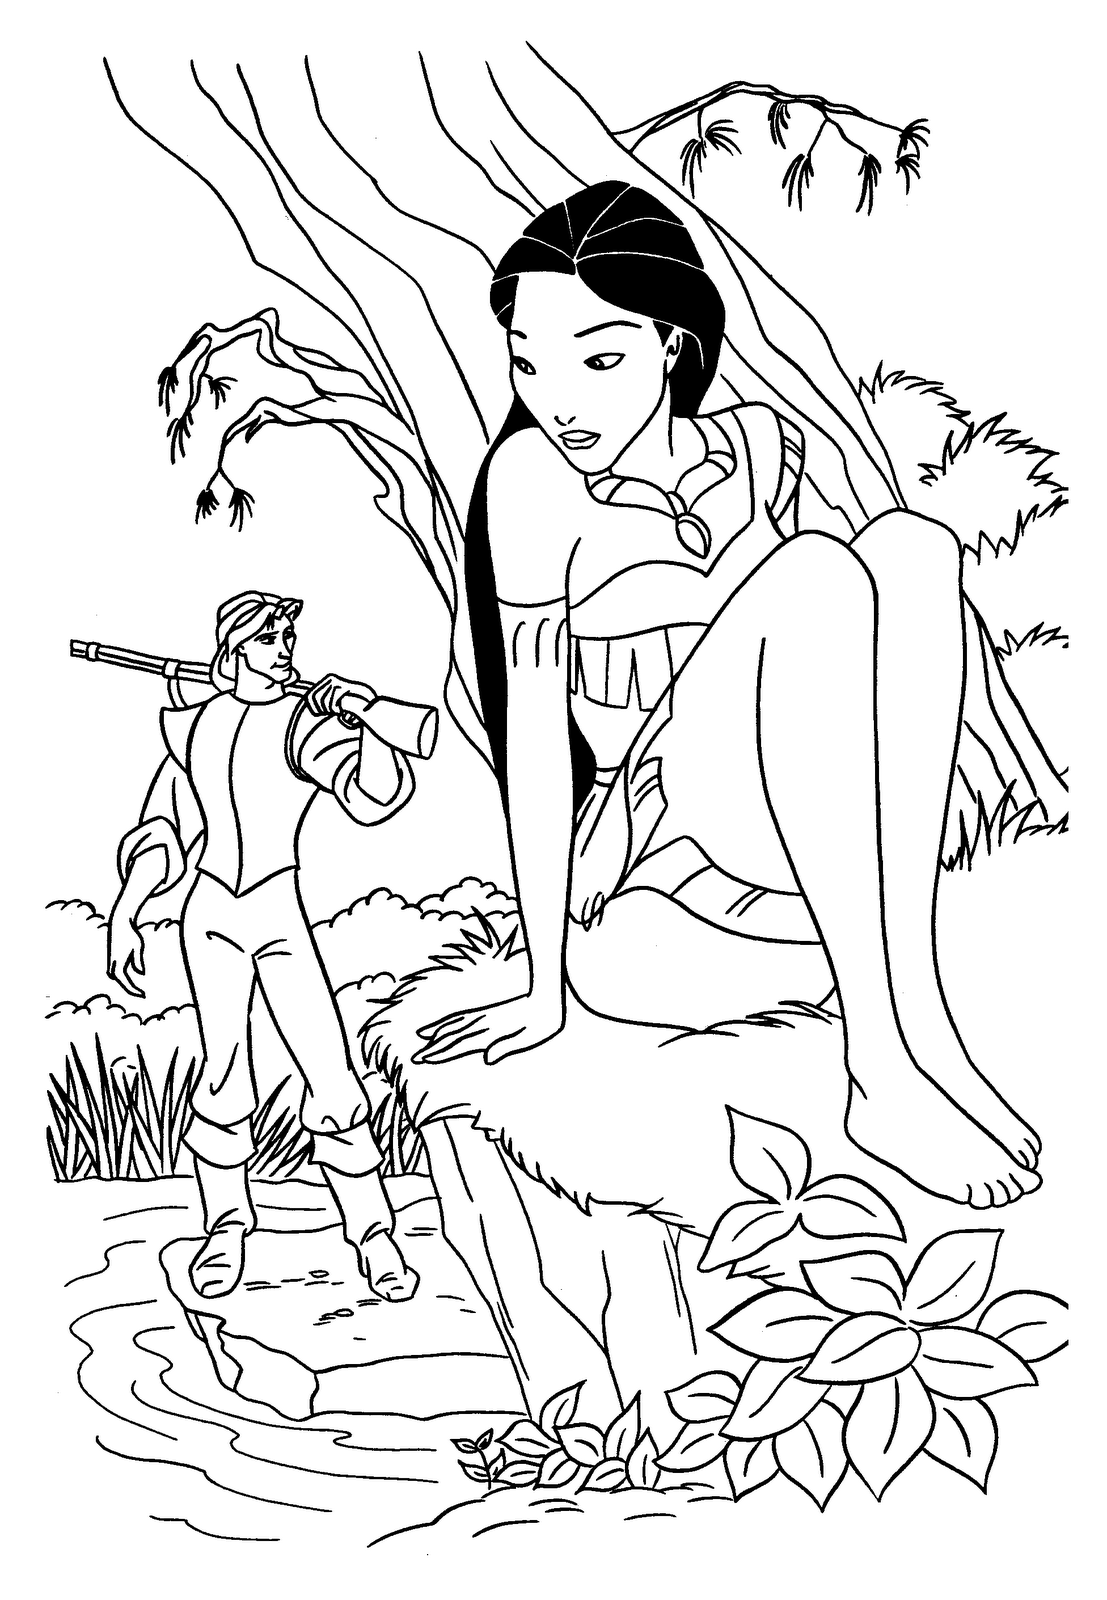 free coloring pages of disney characters disney characters coloring pages free download on clipartmag disney characters free coloring pages of